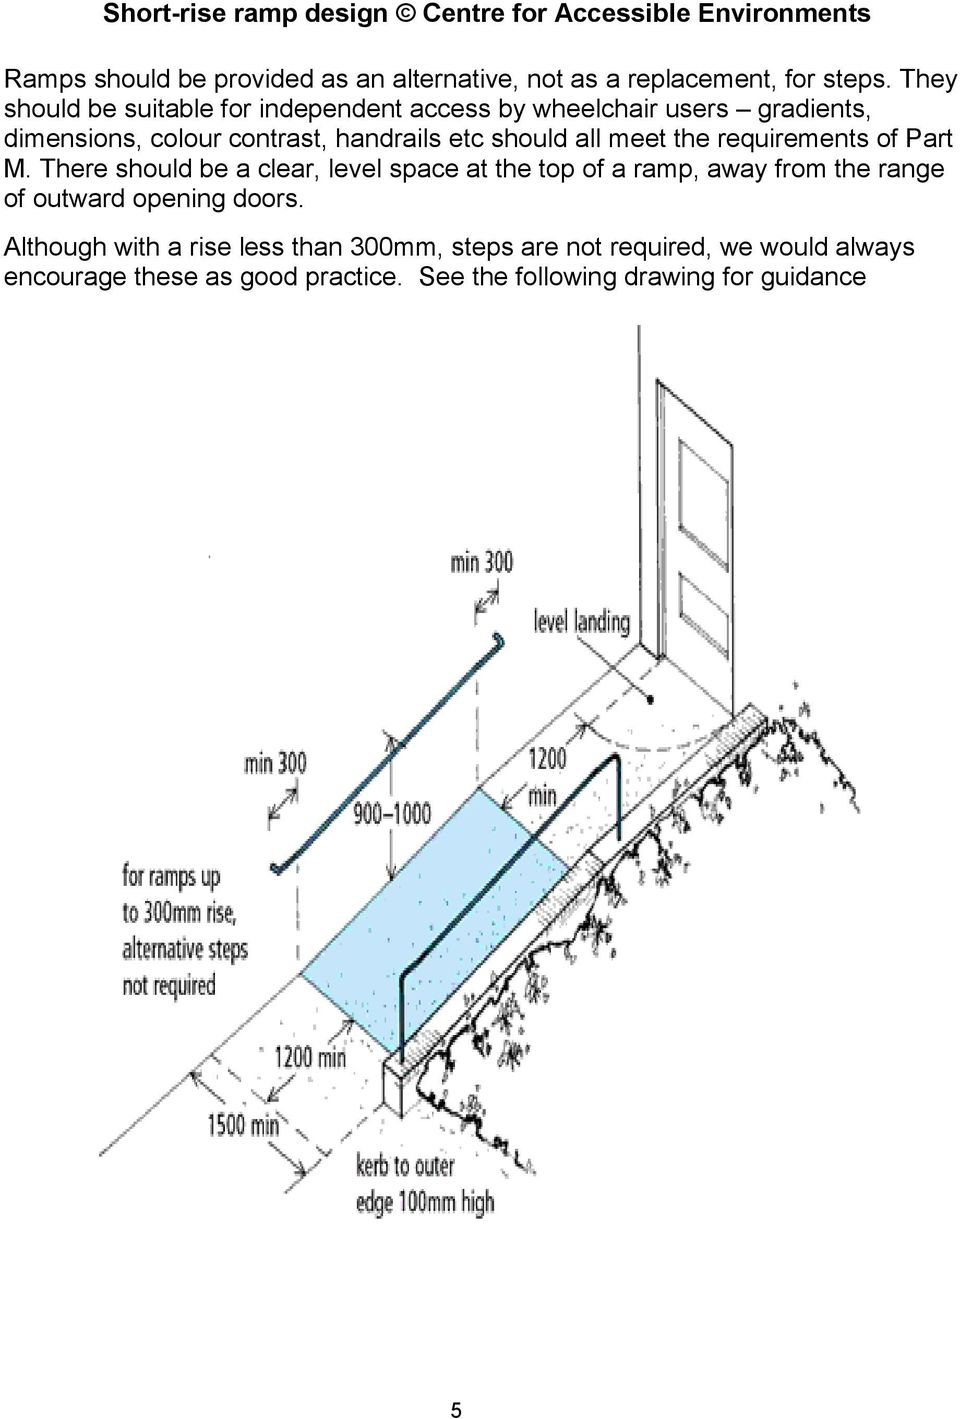 the requirements of Part M. There should be a clear, level space at the top of a ramp, away from the range of outward opening doors.